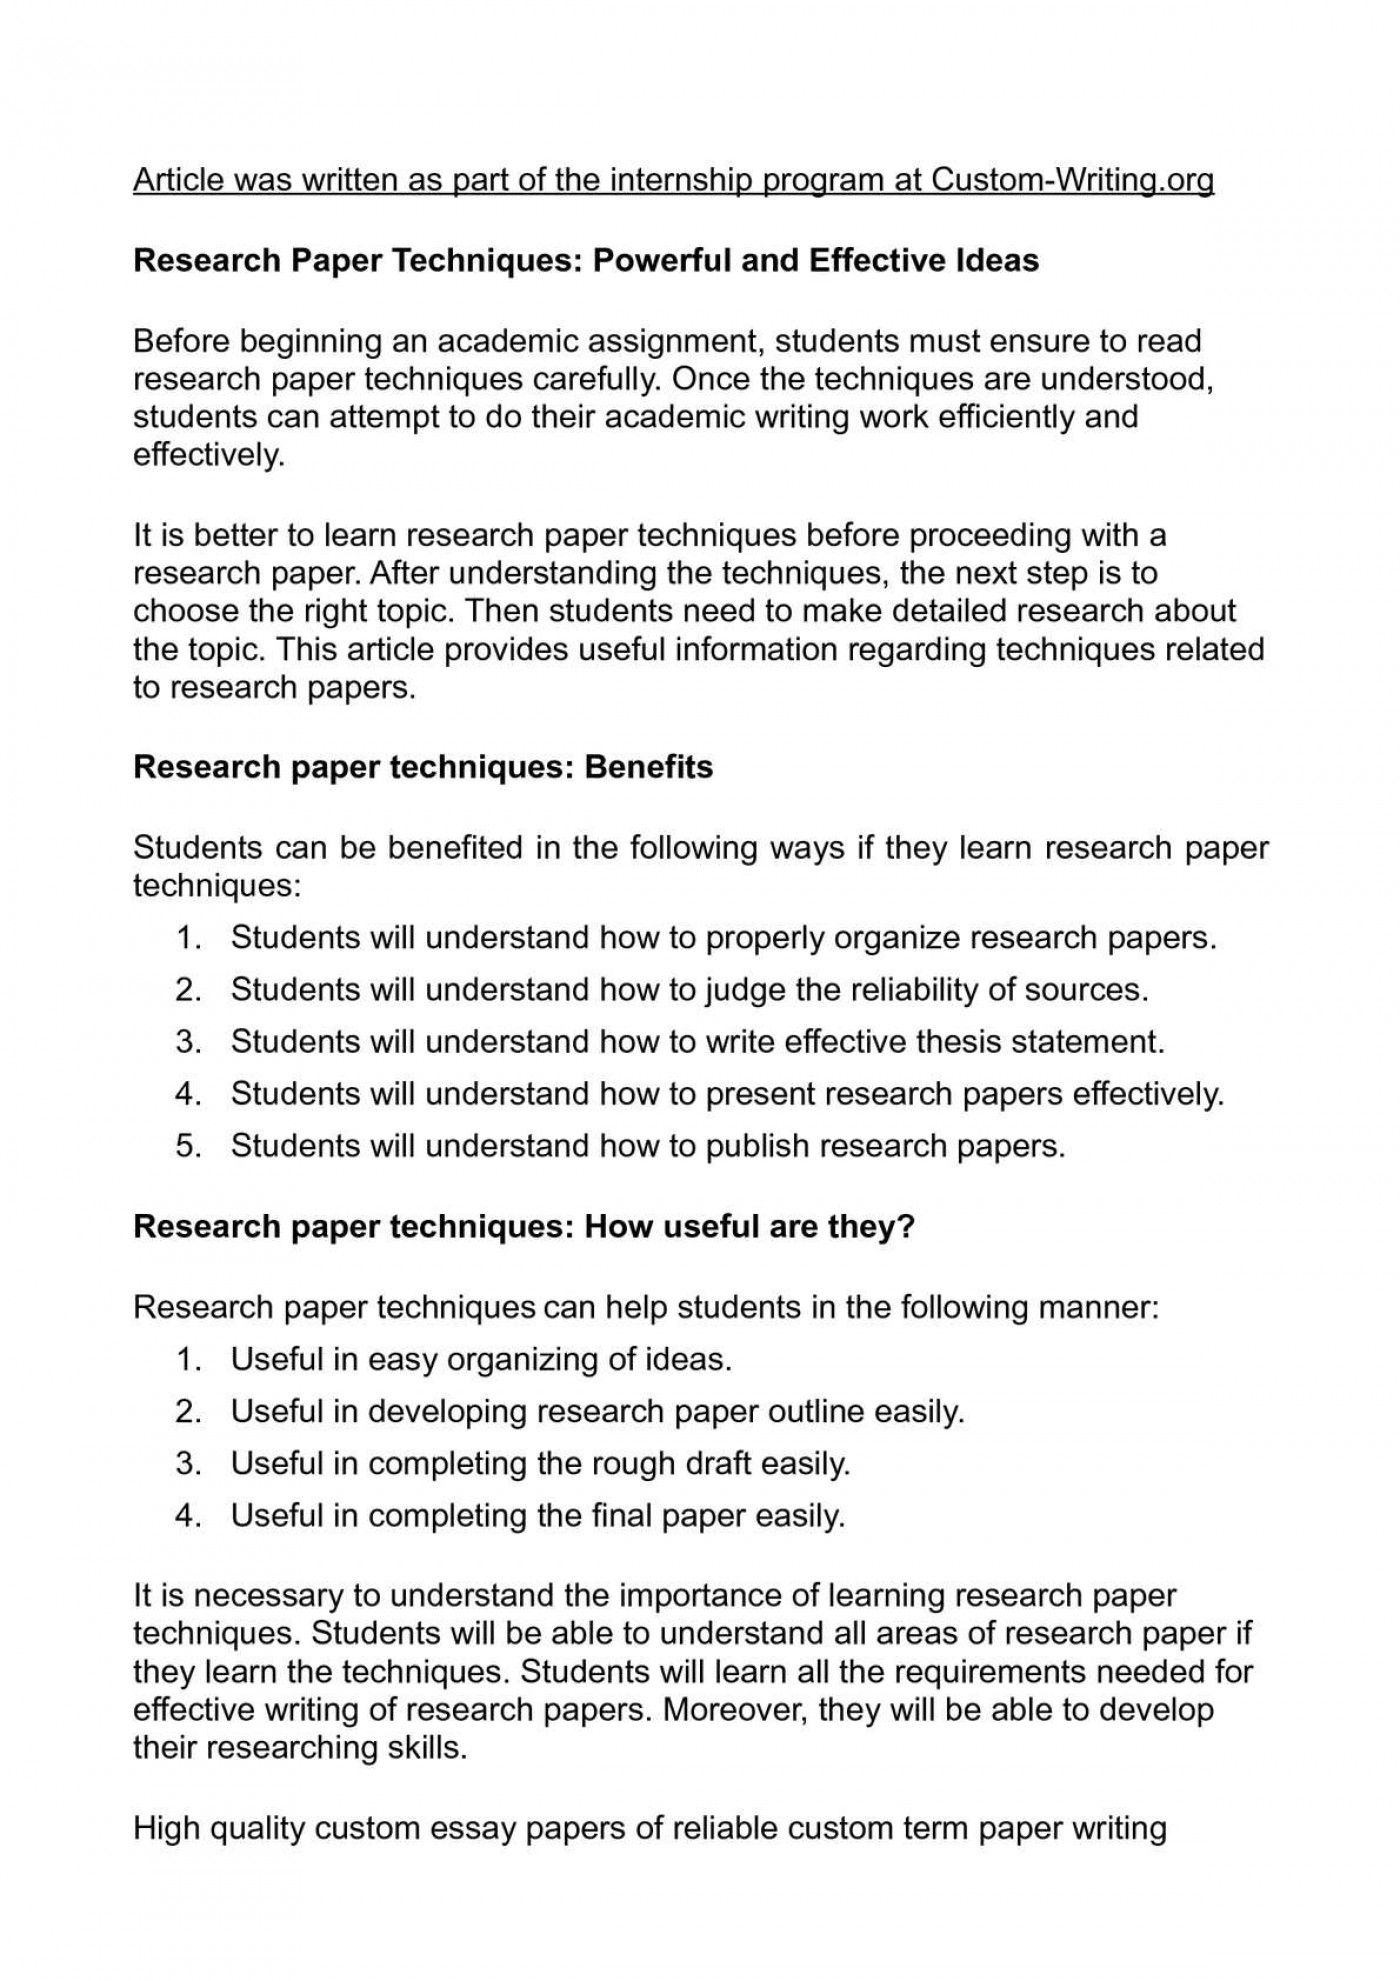 003 Ideas For Research Paper Fascinating Papers In Economics High School College 1400